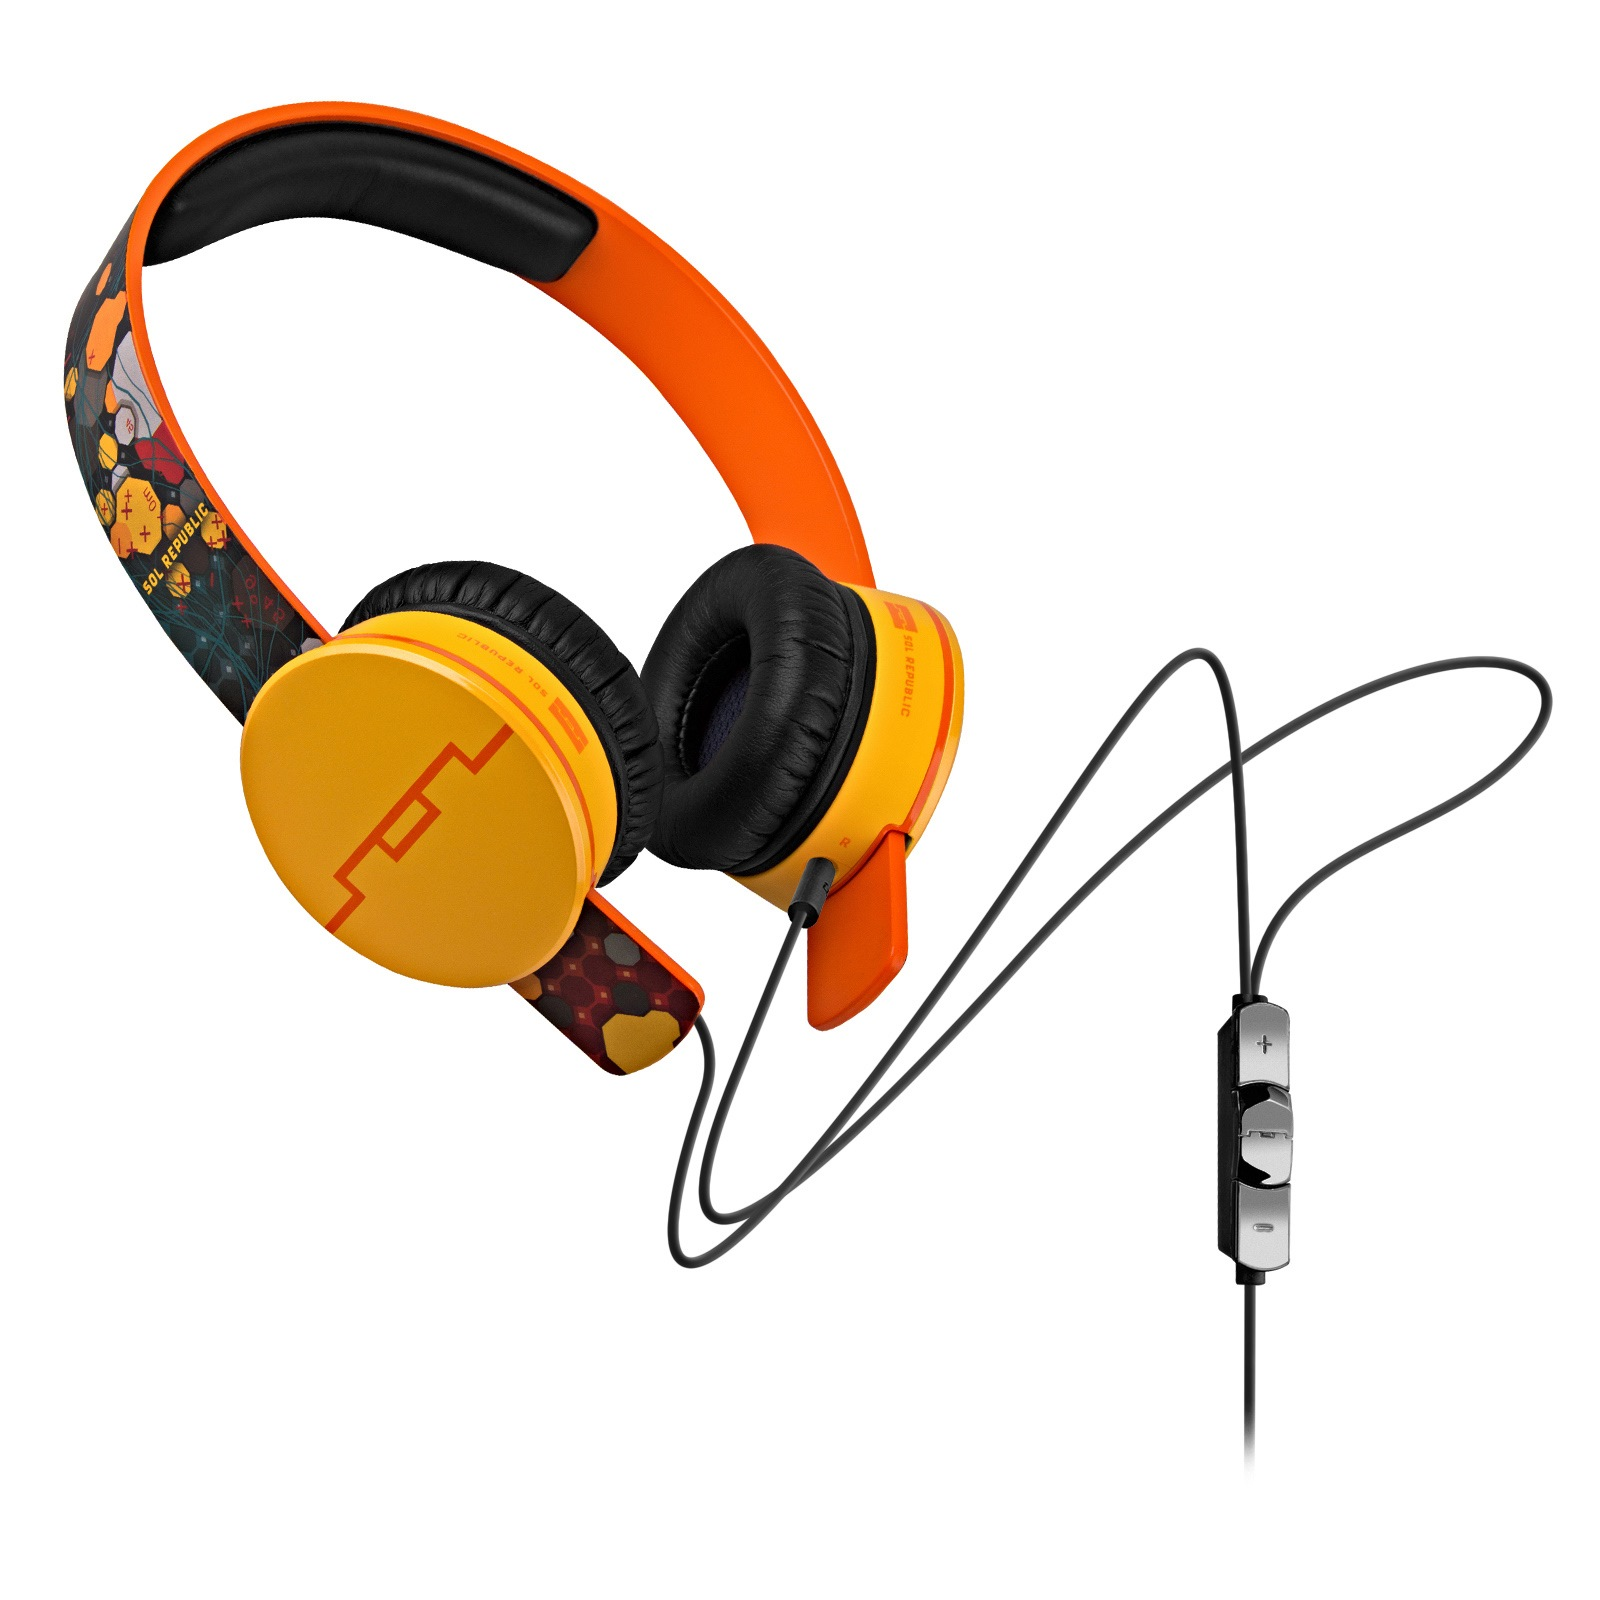 Sol Republic 1299-01 Deadmau5 Tracks HD On-Ear Headphones with Remote (Orange) (Certified Refurbished)